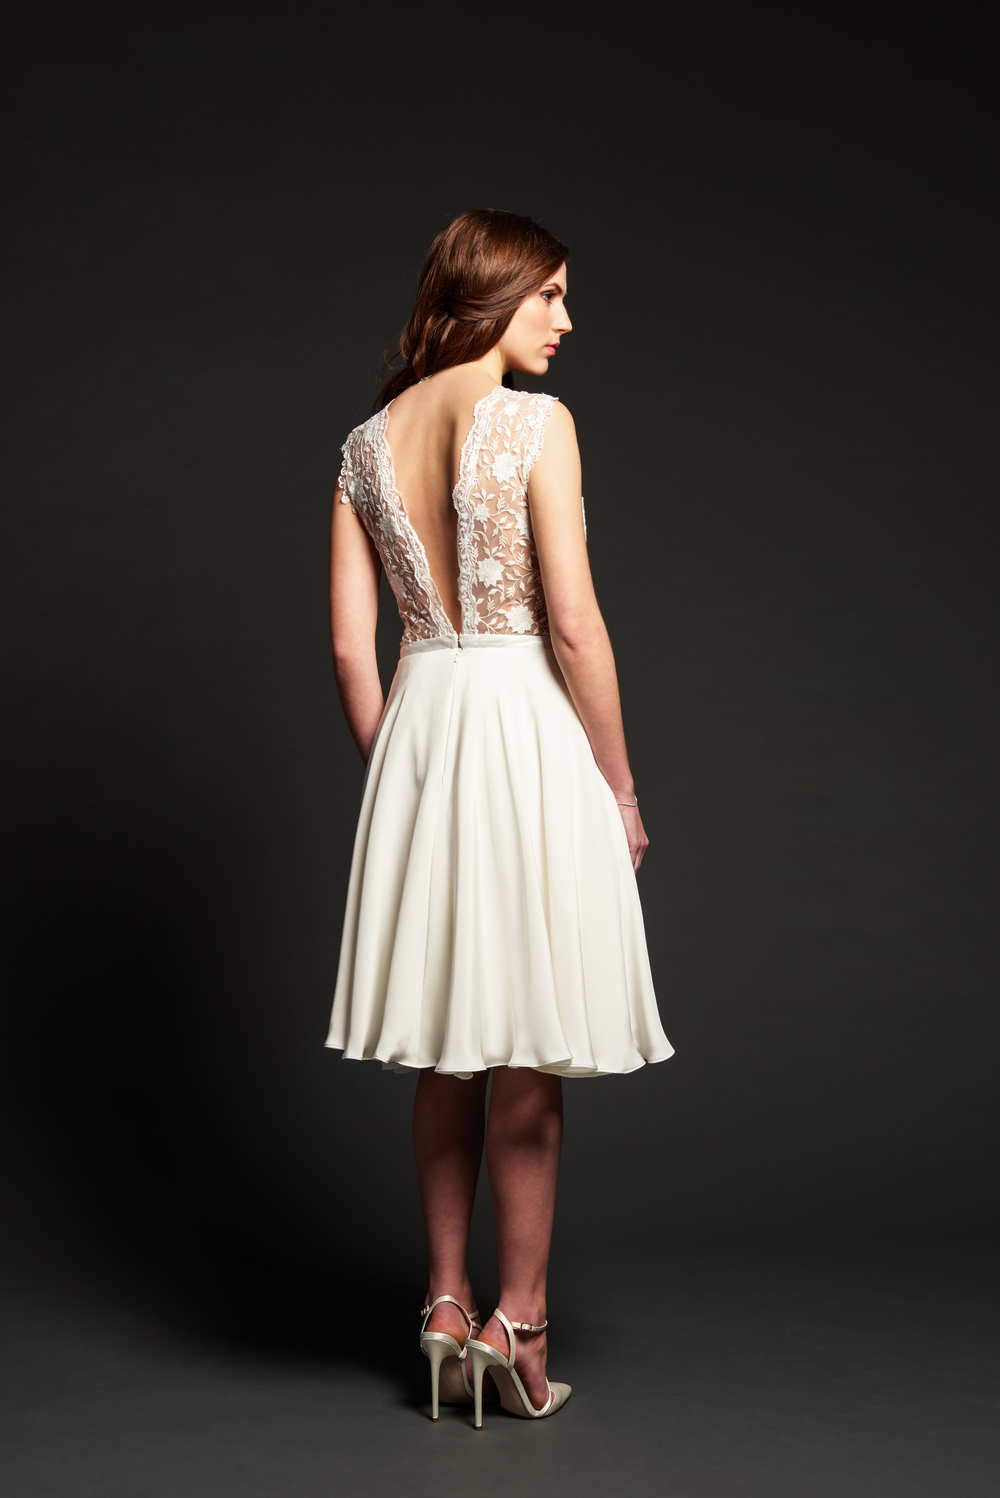 160213_GEMMA LEAKEY BRIDAL - DRESS 02-02.jpg